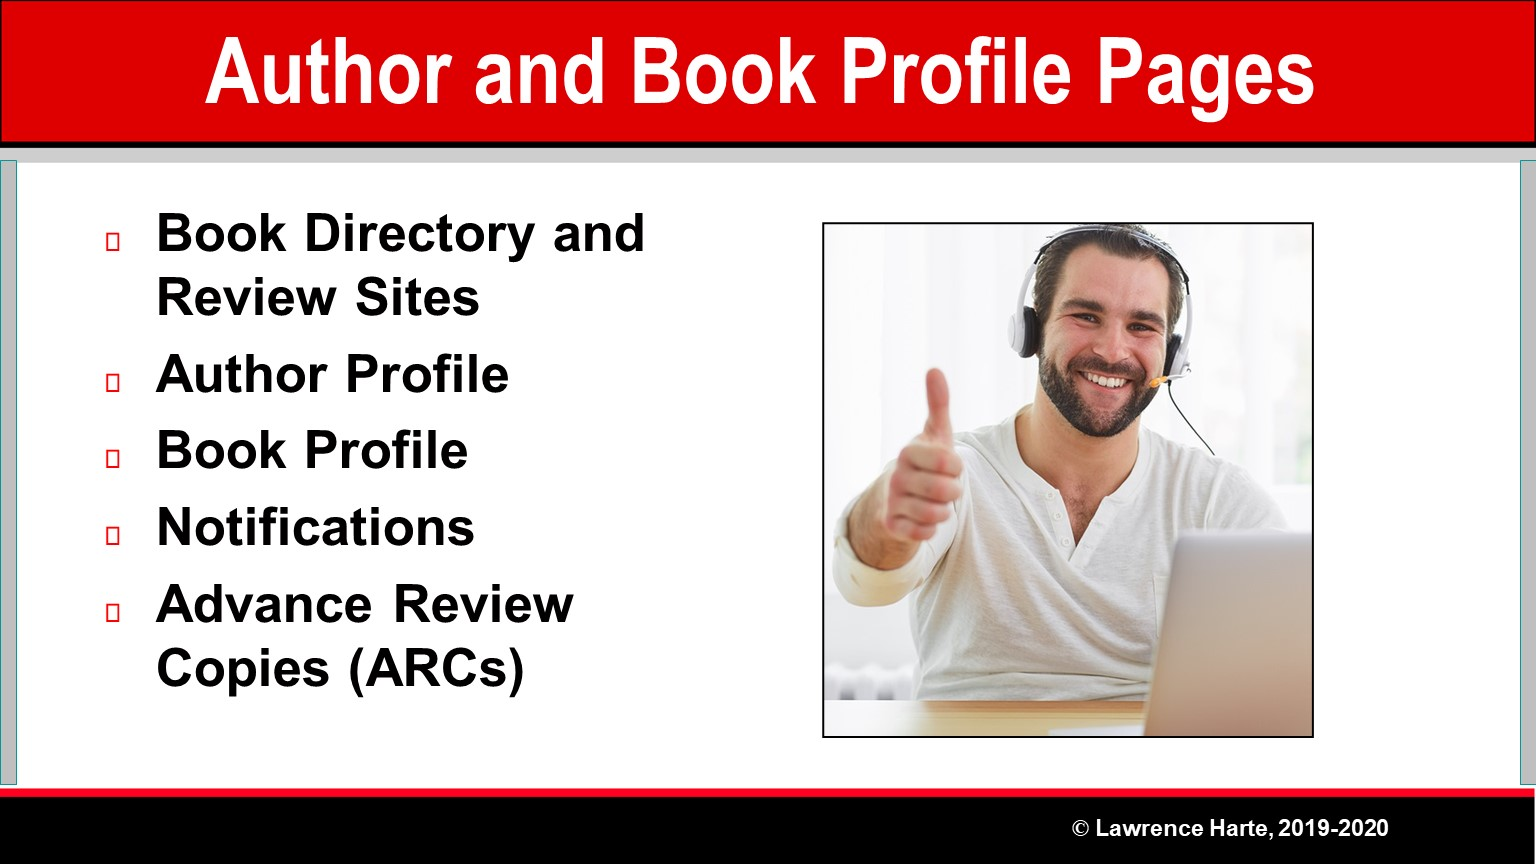 Book Pre-Launch Marketing Author and Book Profile Pages